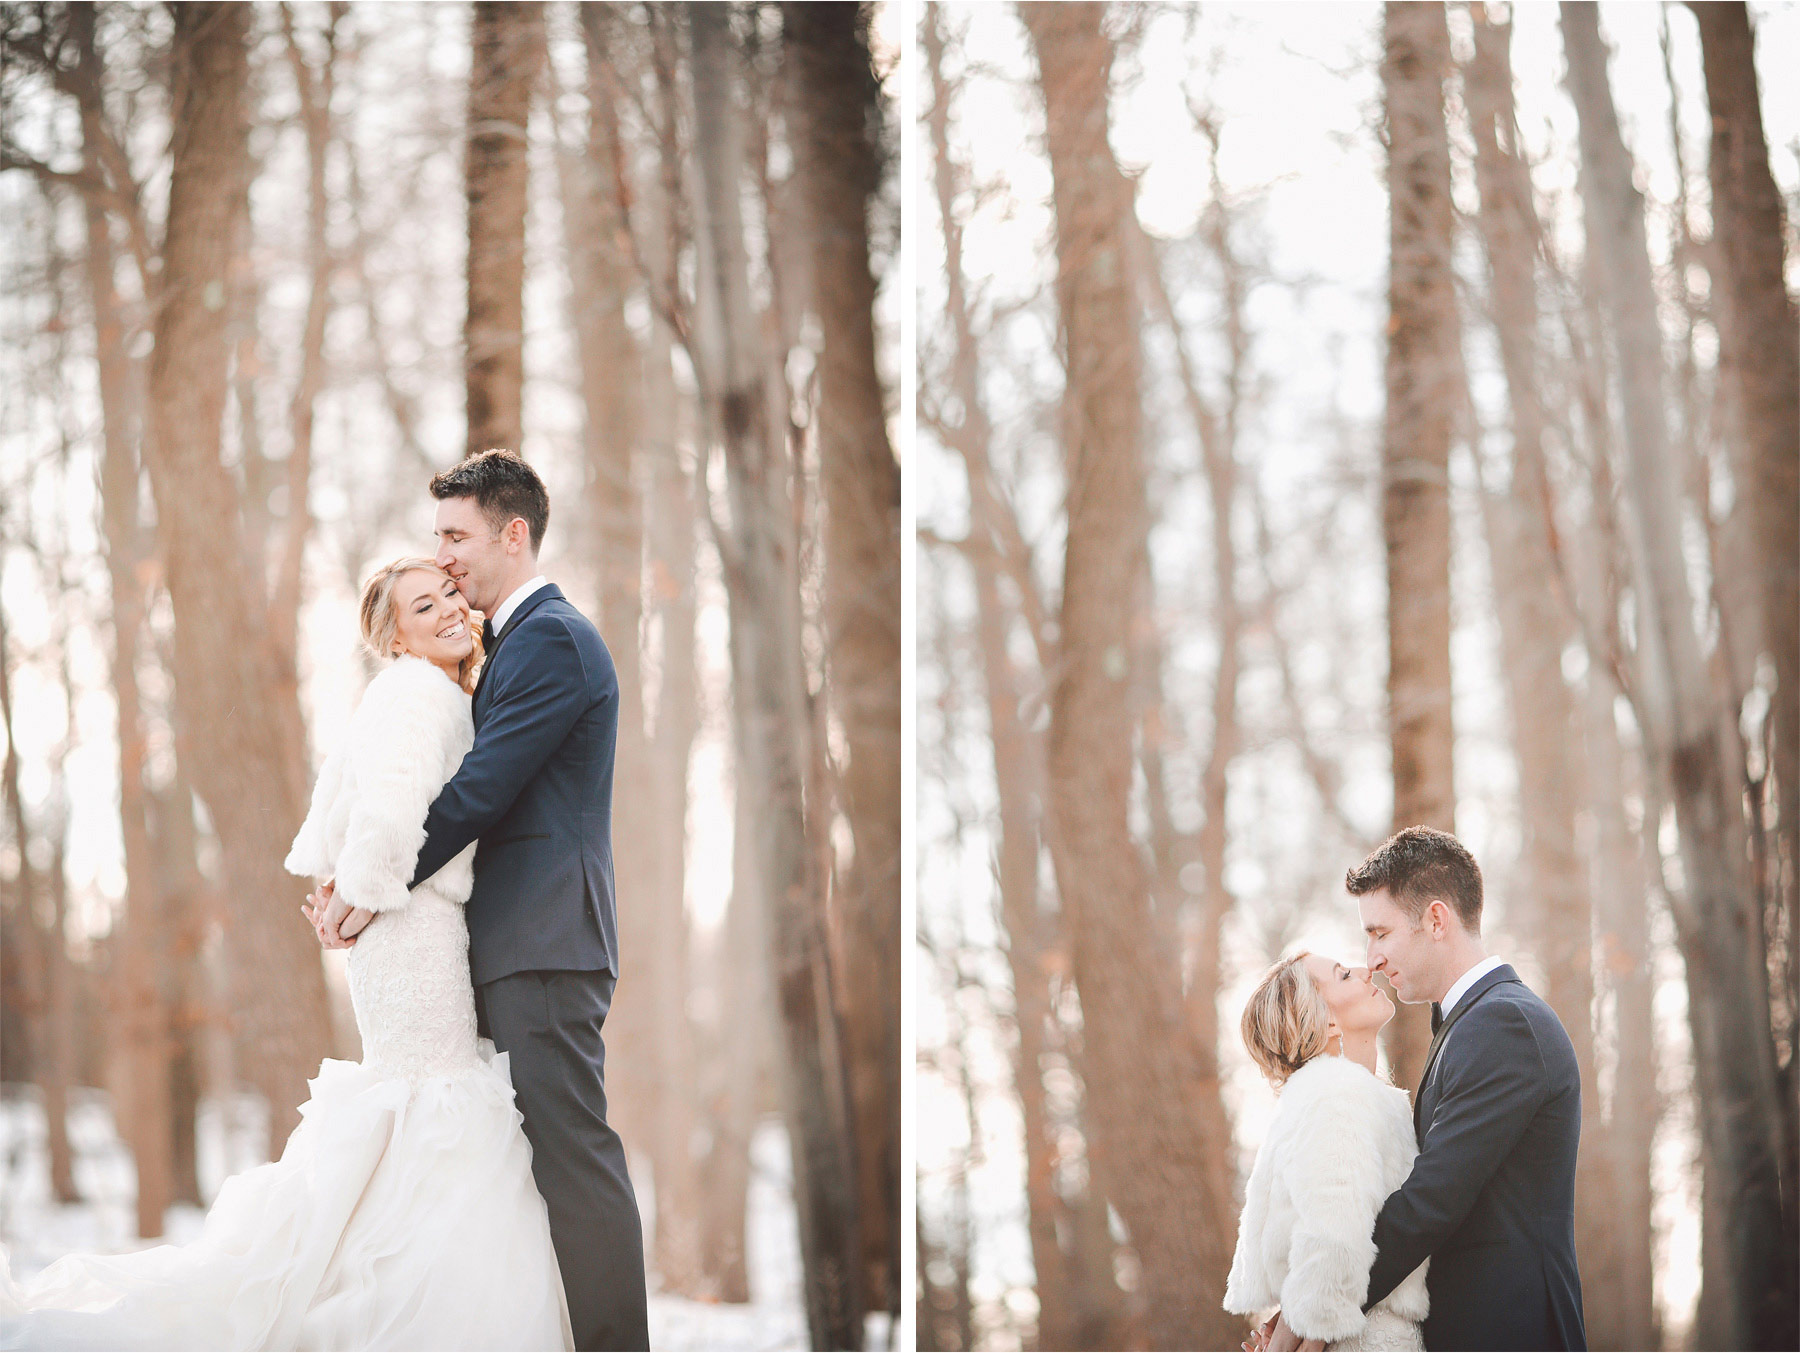 07-Watchung-New-Jersey-Wedding-Photographer-by-Andrew-Vick-Photography-Winter-Saint-Marys-Chuch-Stony-Hill-First-Meeting-Look-Bride-Groom-Fur-Coat-Kiss-Embrace-Vintage-Alexia-and-Justin.jpg